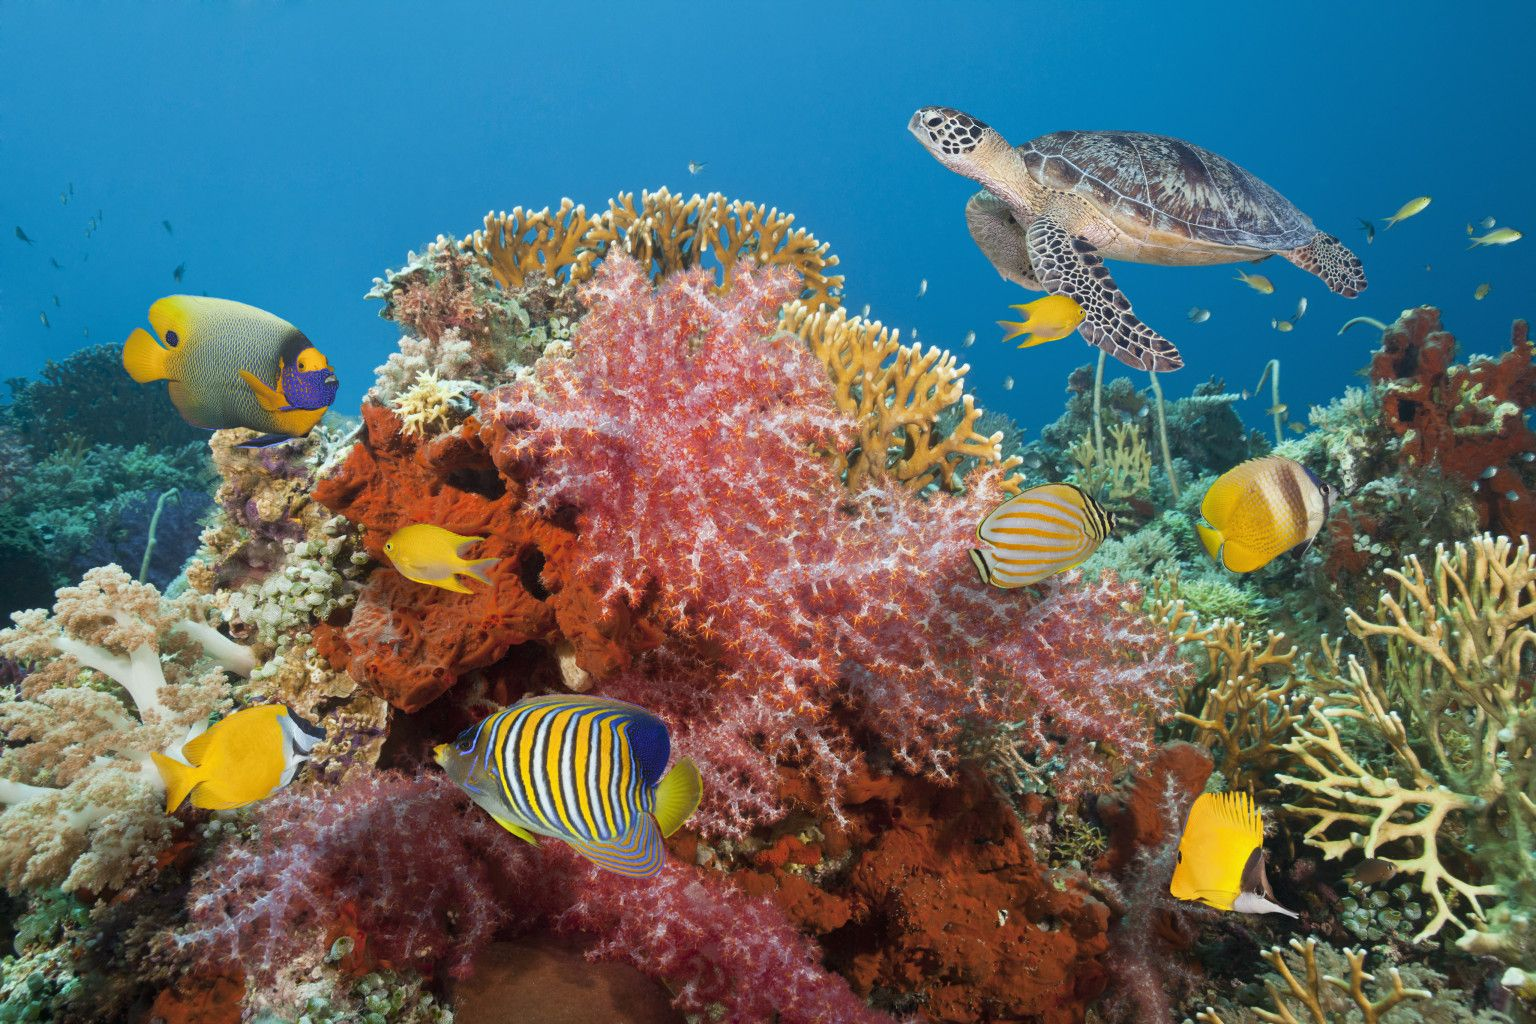 o-CORAL-REEF-facebook.jpg (1536×1024) | The End of the World ...